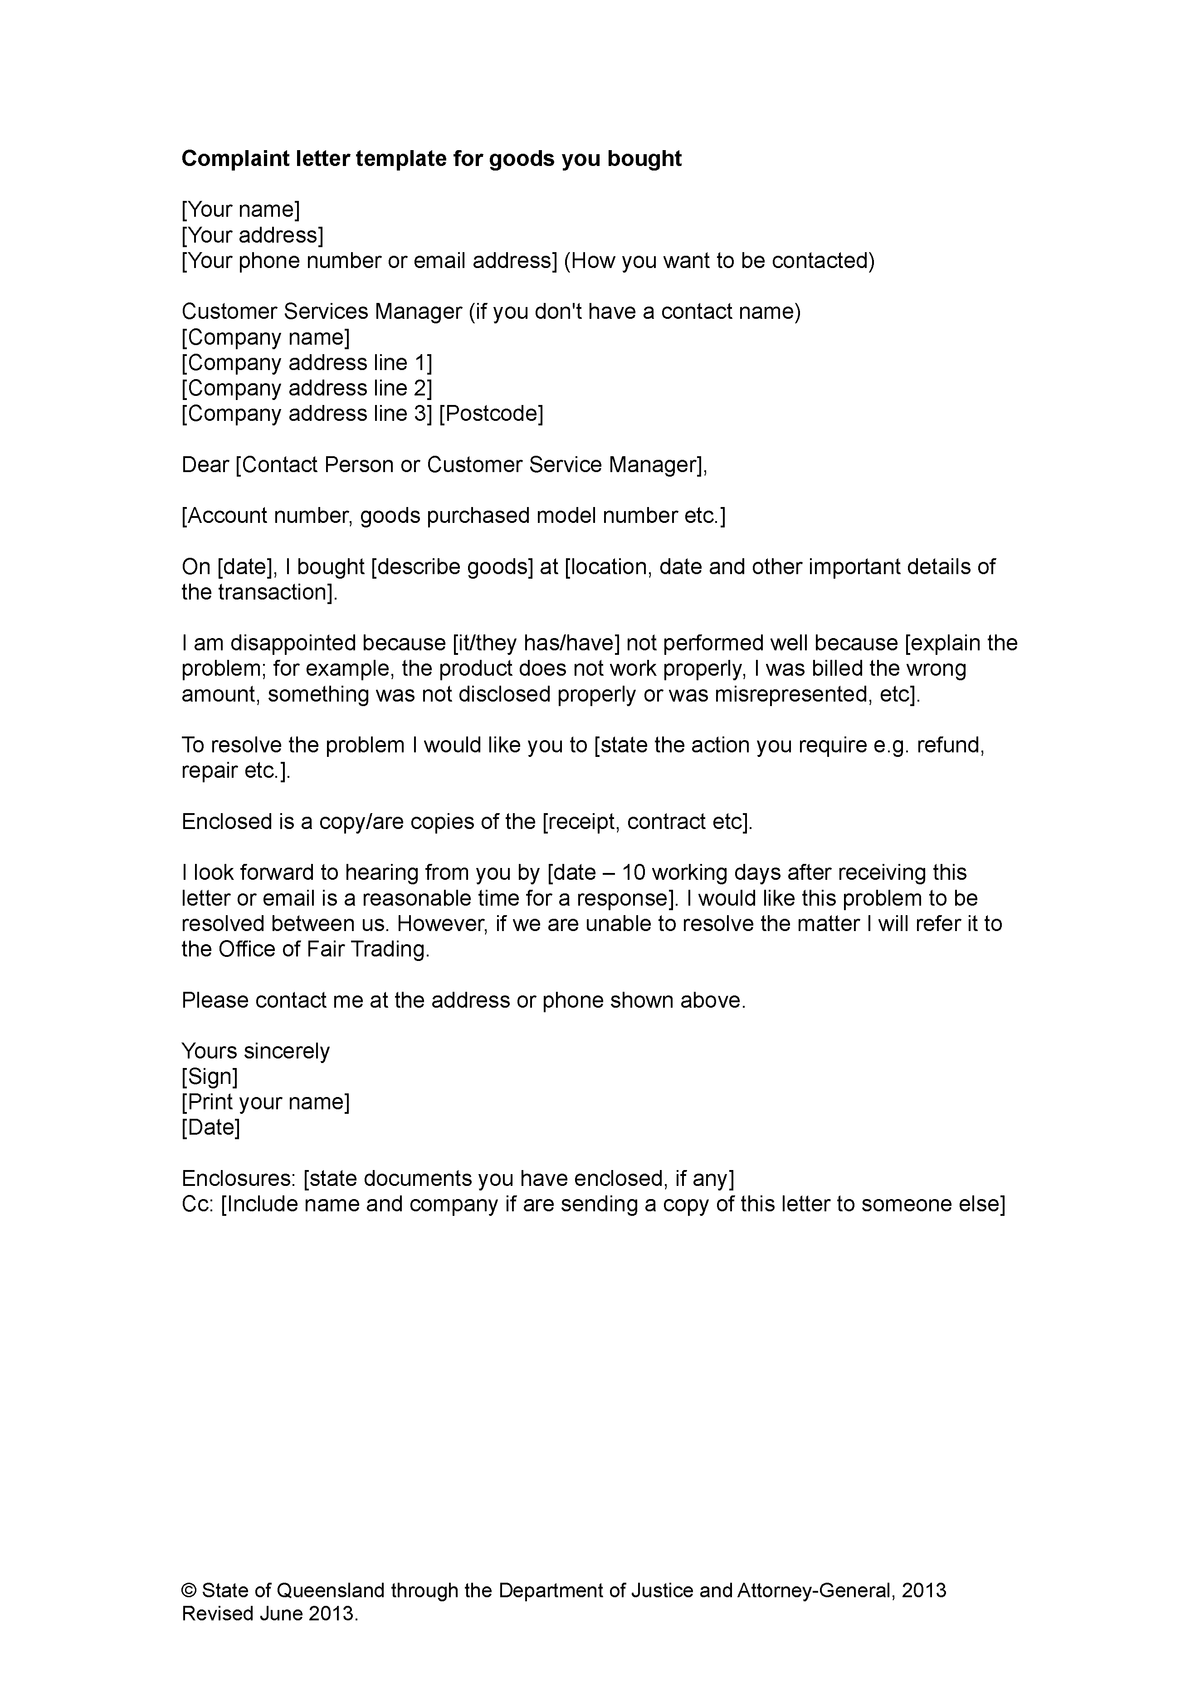 Sample letter for goods - BSB111: Business Law and Ethics